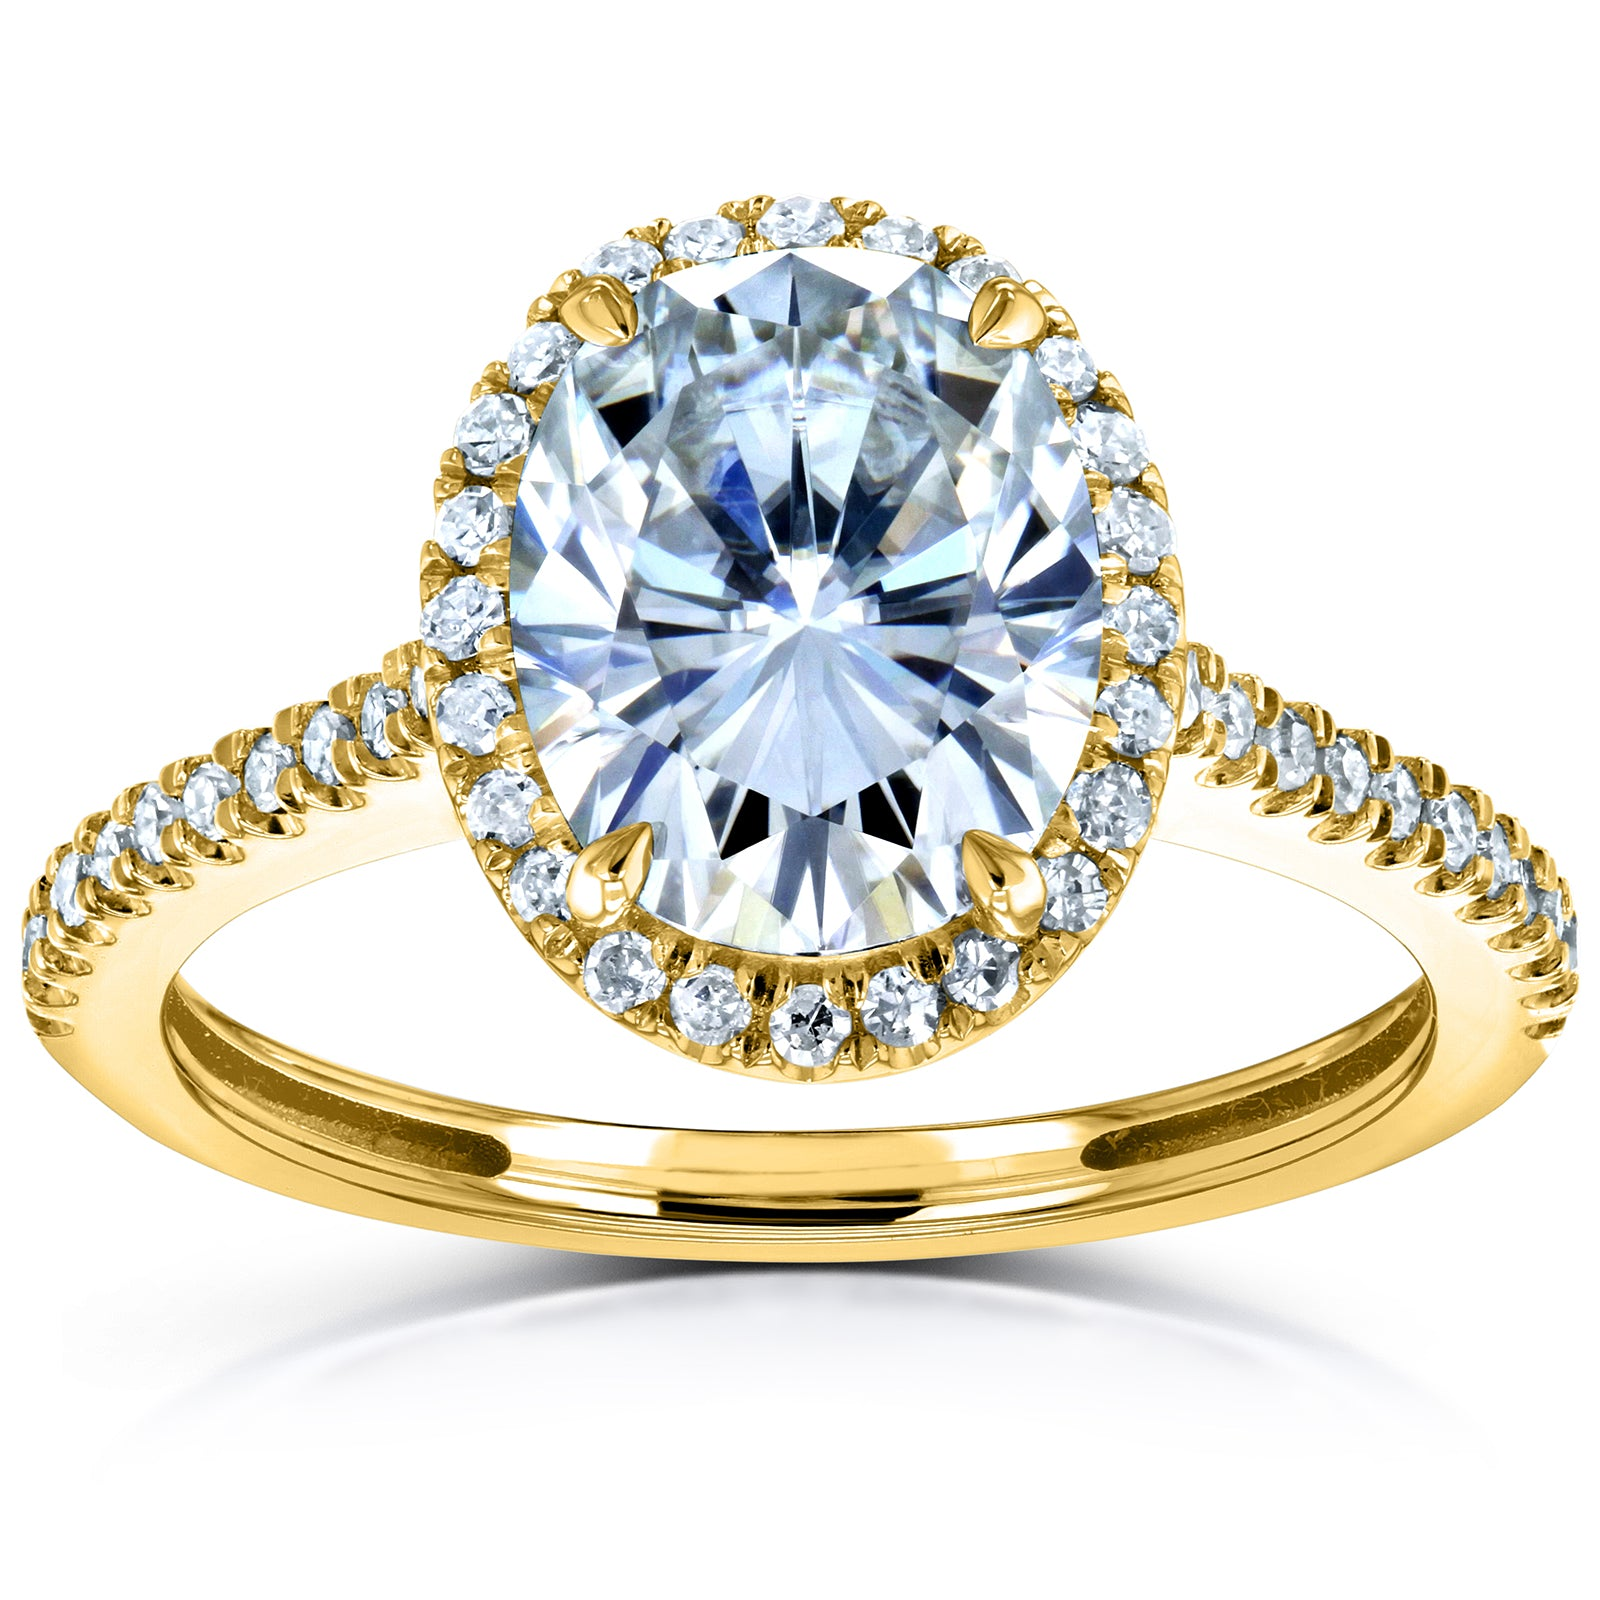 Discounts Oval Moissanite and Diamond Halo Engagement Ring 2 1/4 CTW 14k Gold - 5.0 yellow-gold Kobelli H-I